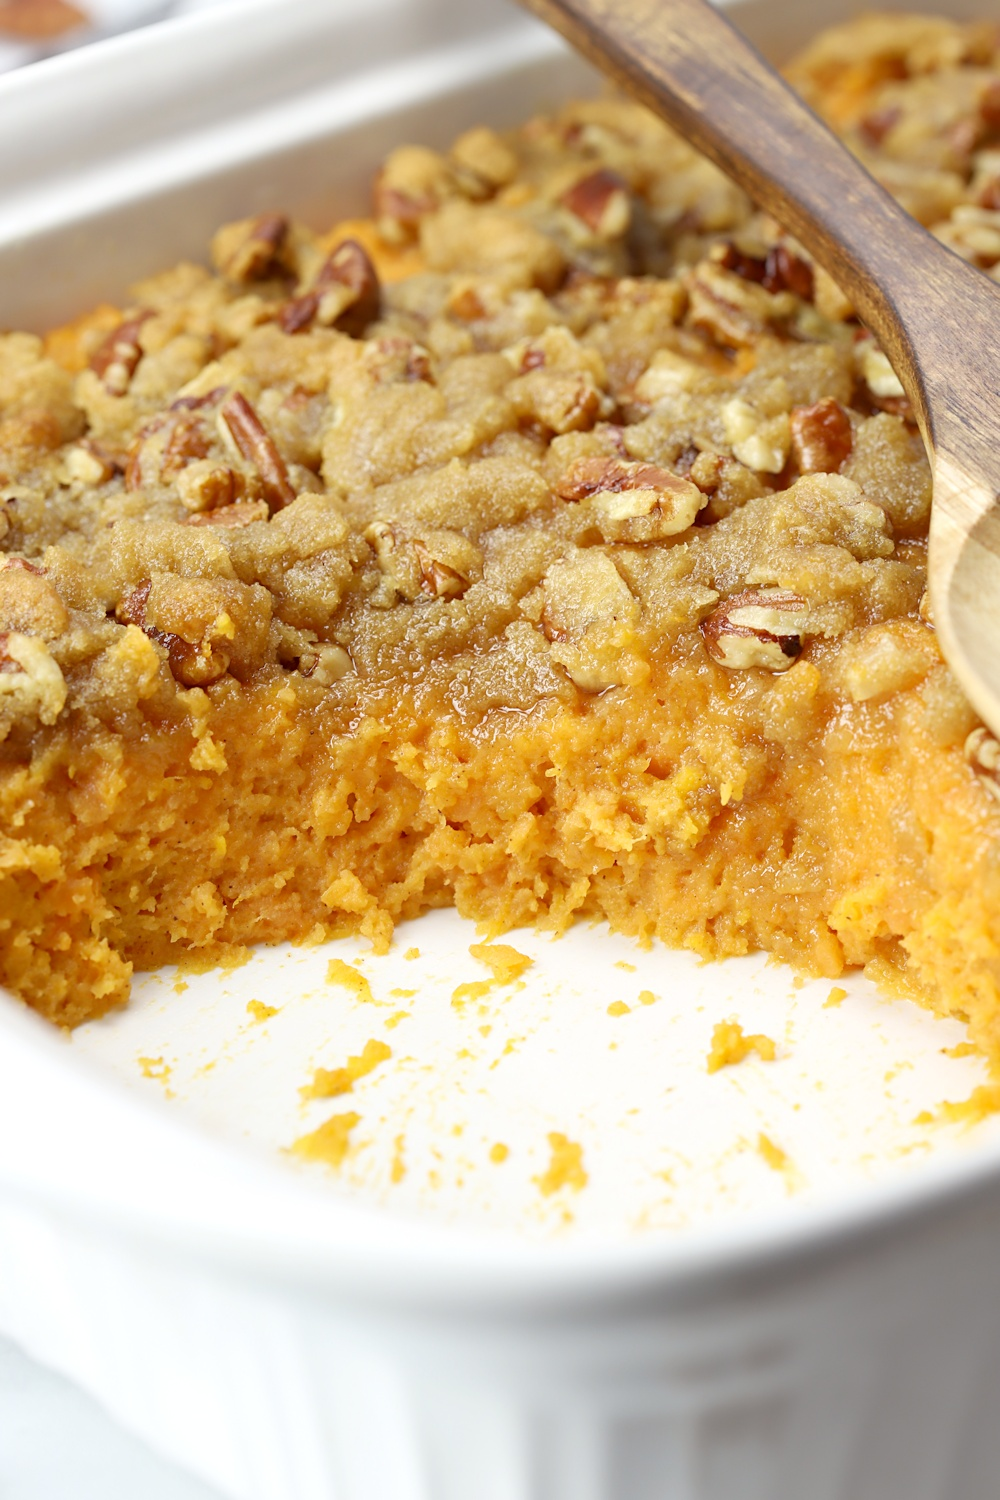 A side view of the layers of a southern sweet potato casserole.